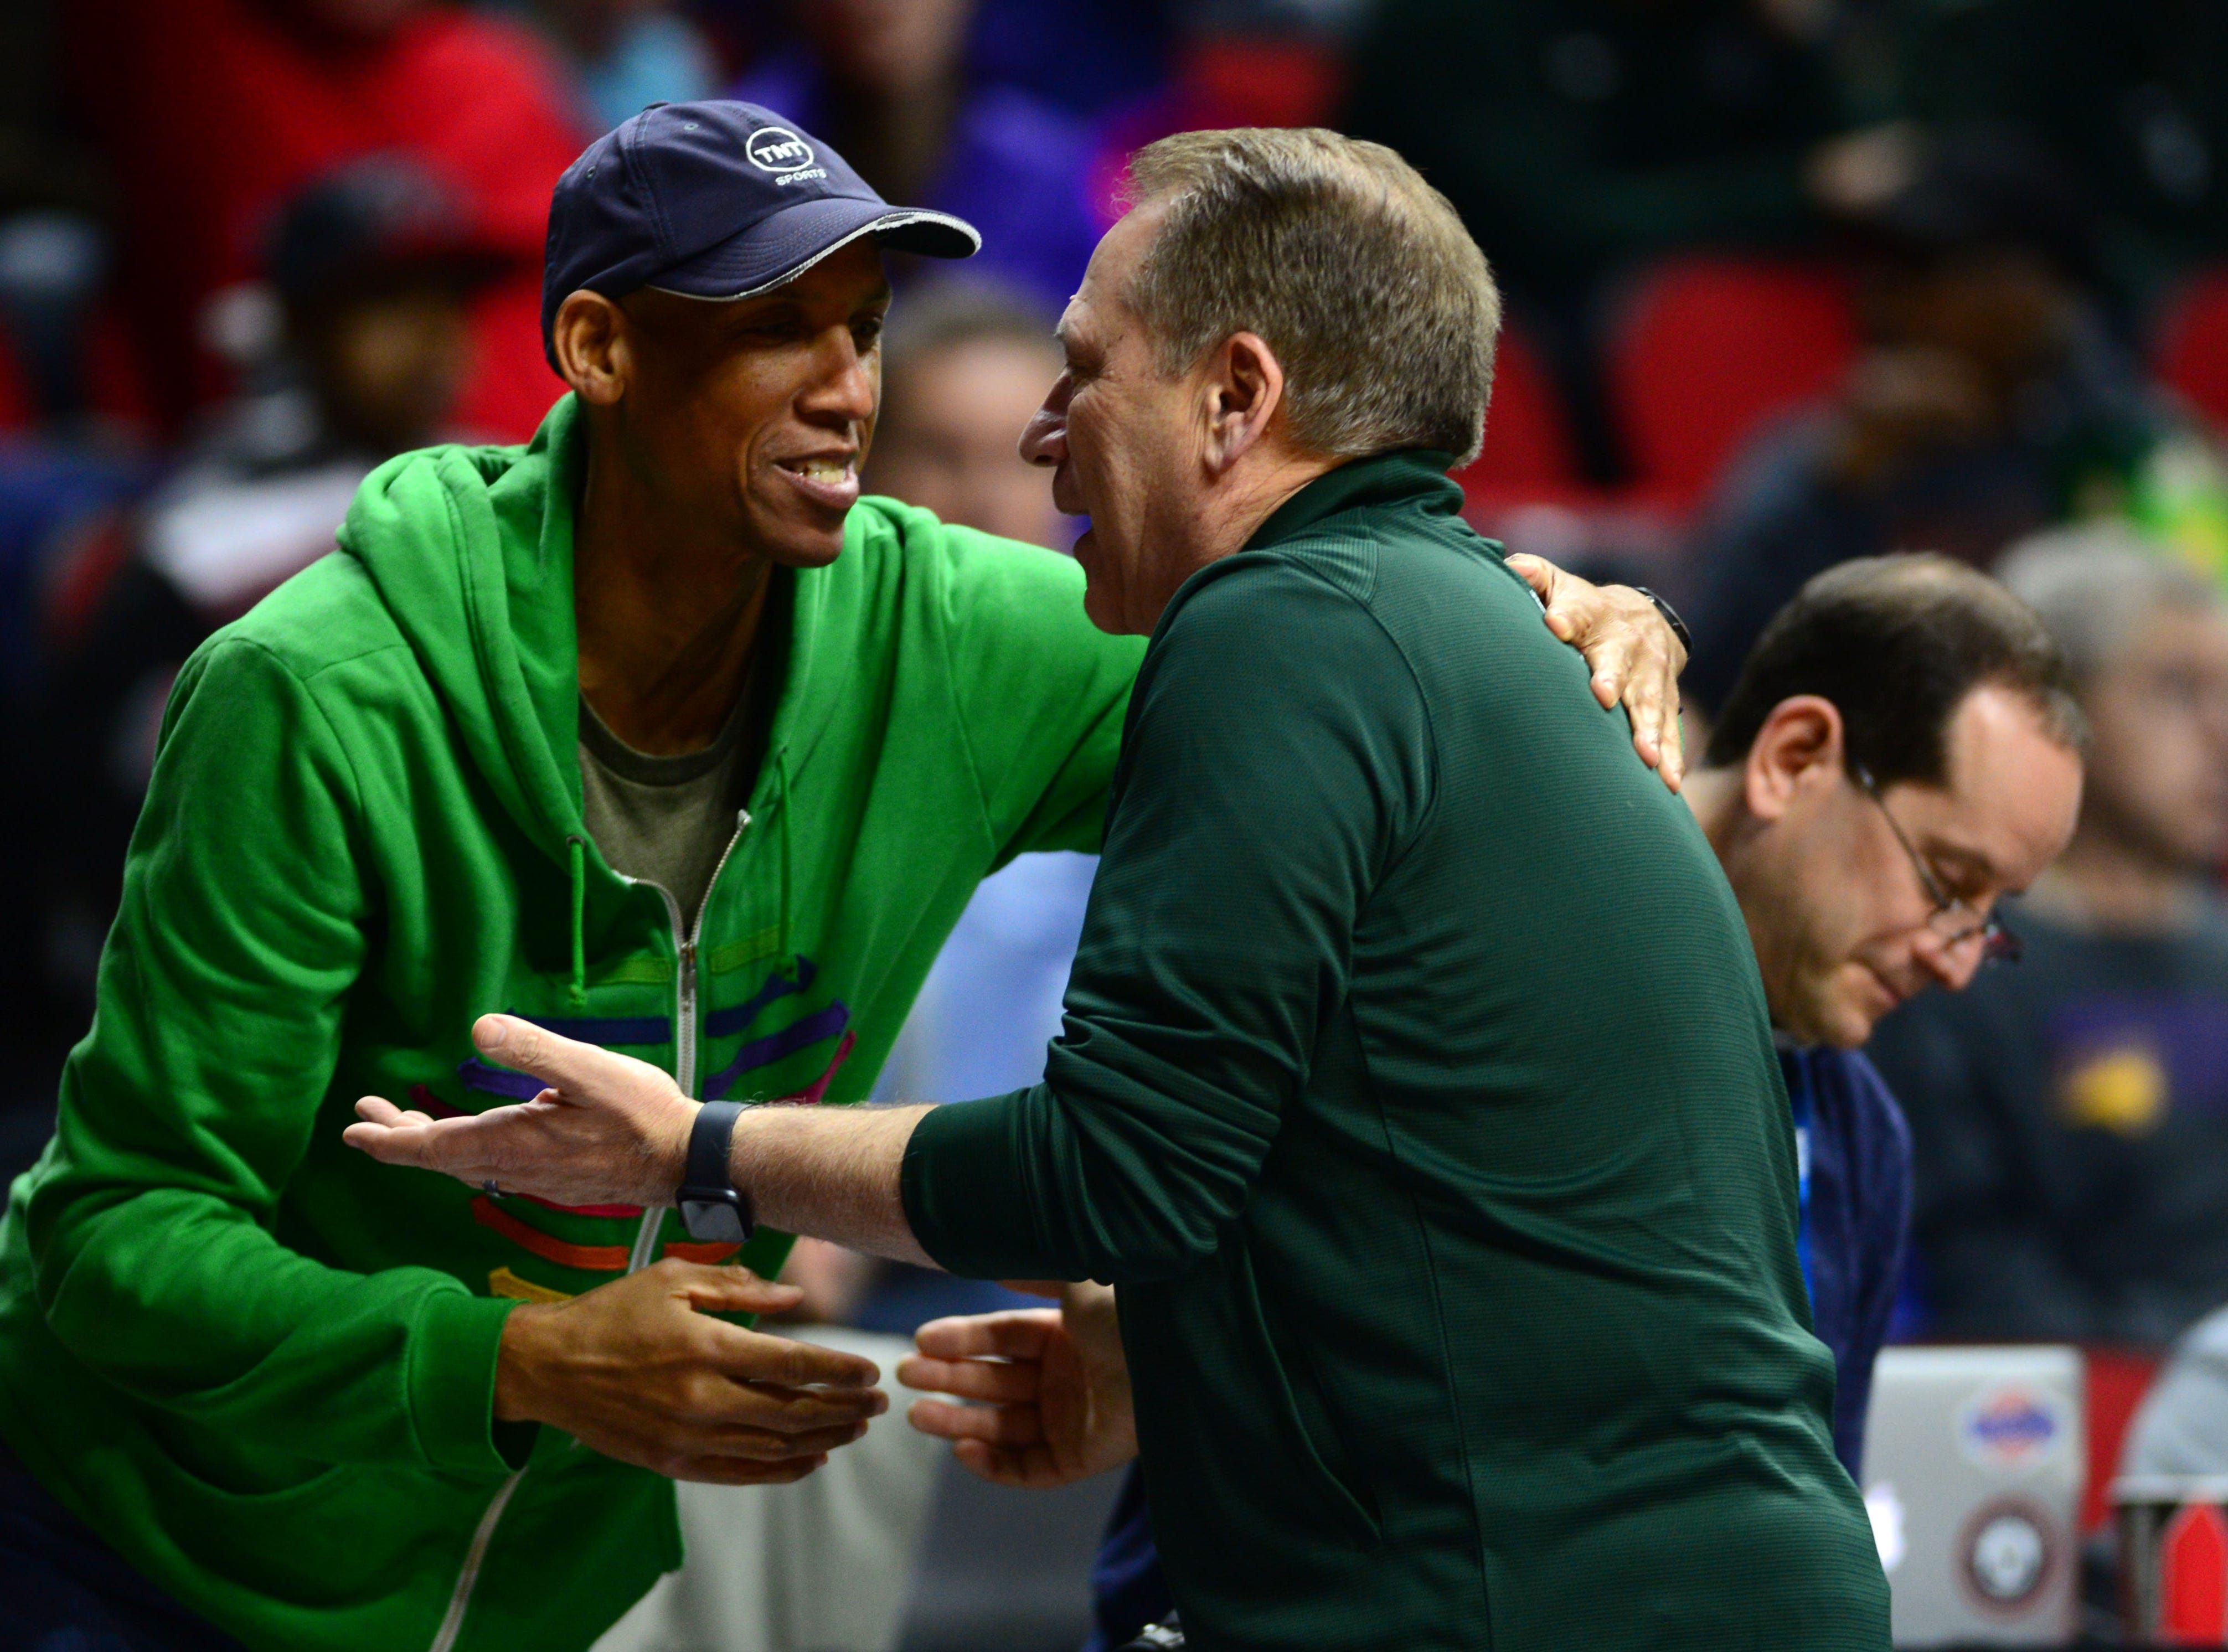 Mar 20, 2019; Des Moines, IA, USA; Michigan State Spartans head coach Tom Izzo hugs TNT analyst Reggie Miller during practice before the first round of the 2019 NCAA Tournament at Wells Fargo Arena.